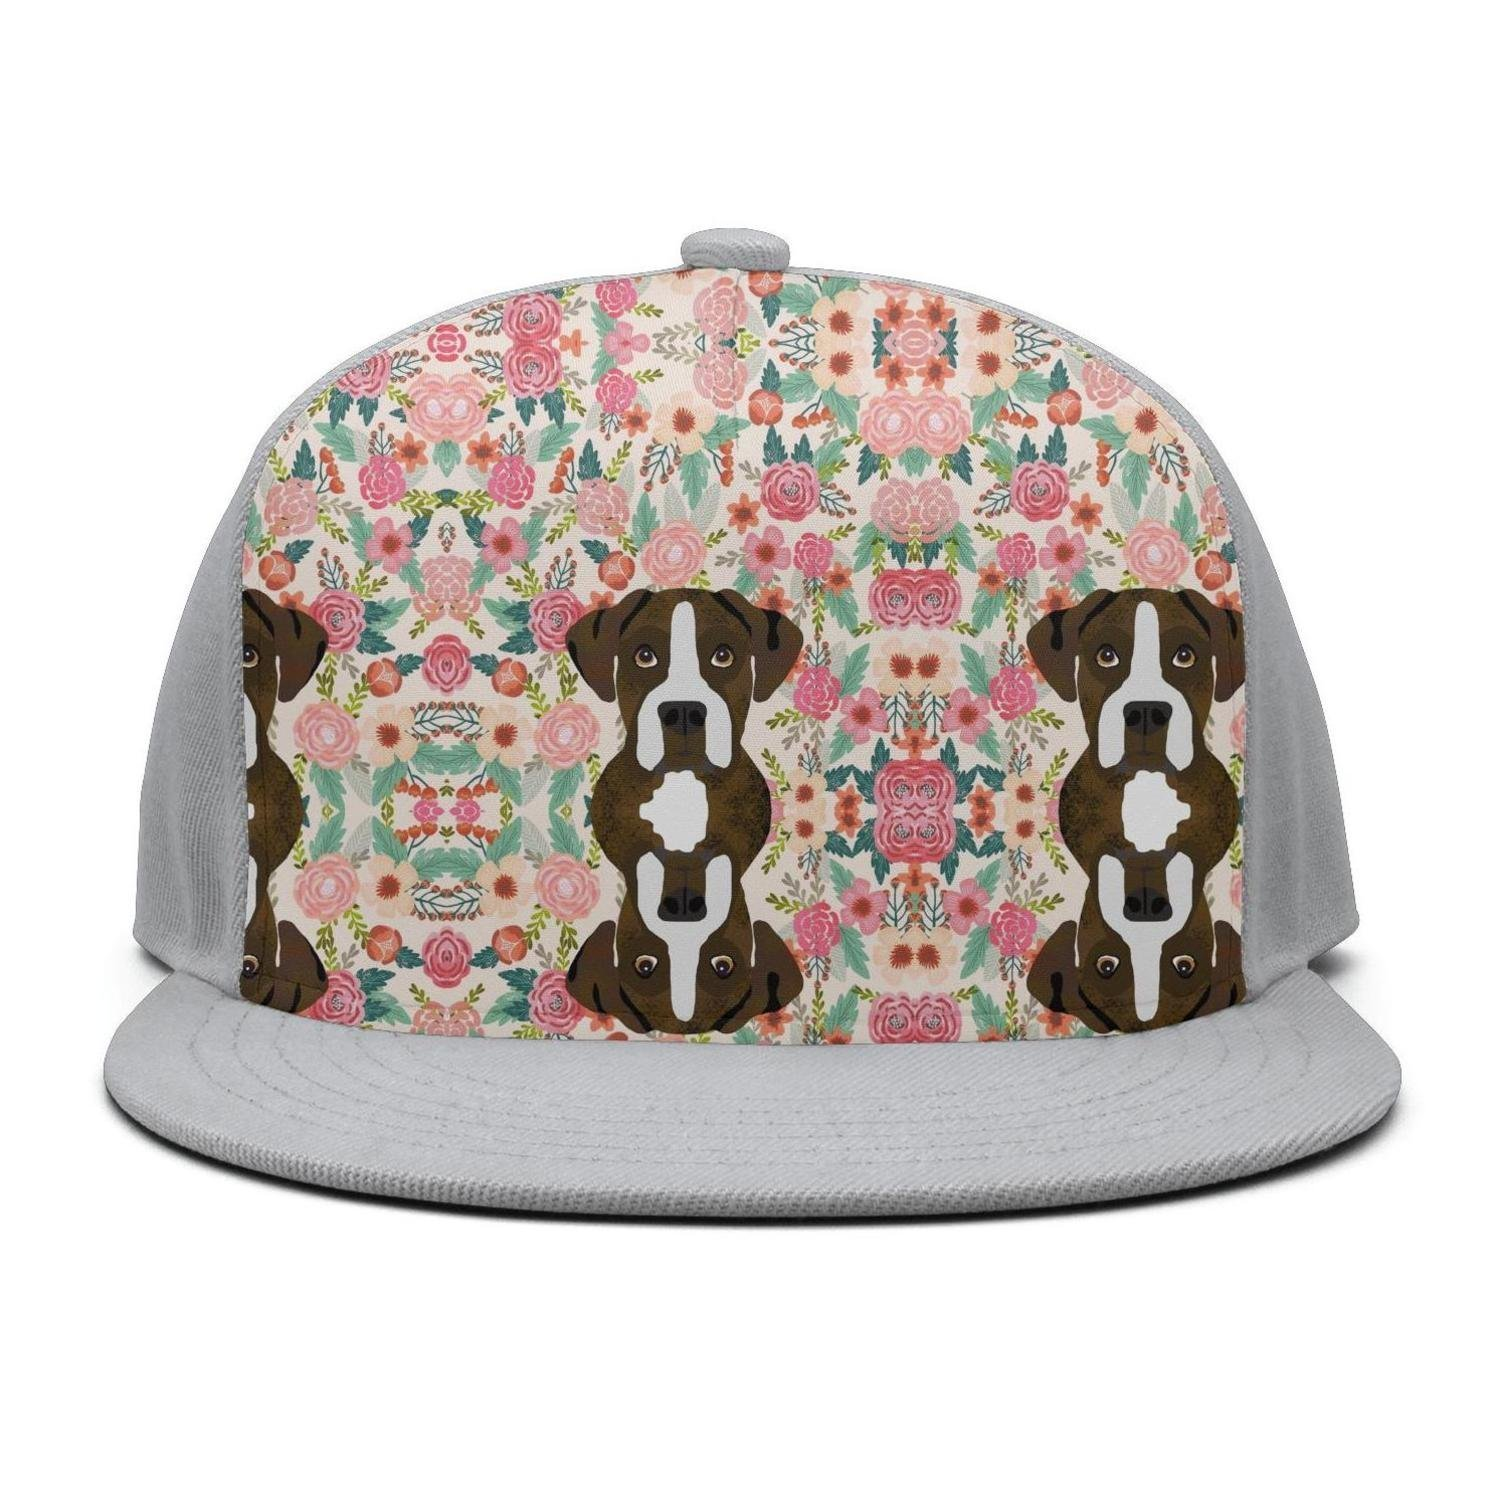 35f411749b1 Trum Namii Unisex dri fit Cap Boxer Dogs Floral Flower Baseball Cap for  Women at Amazon Men s Clothing store